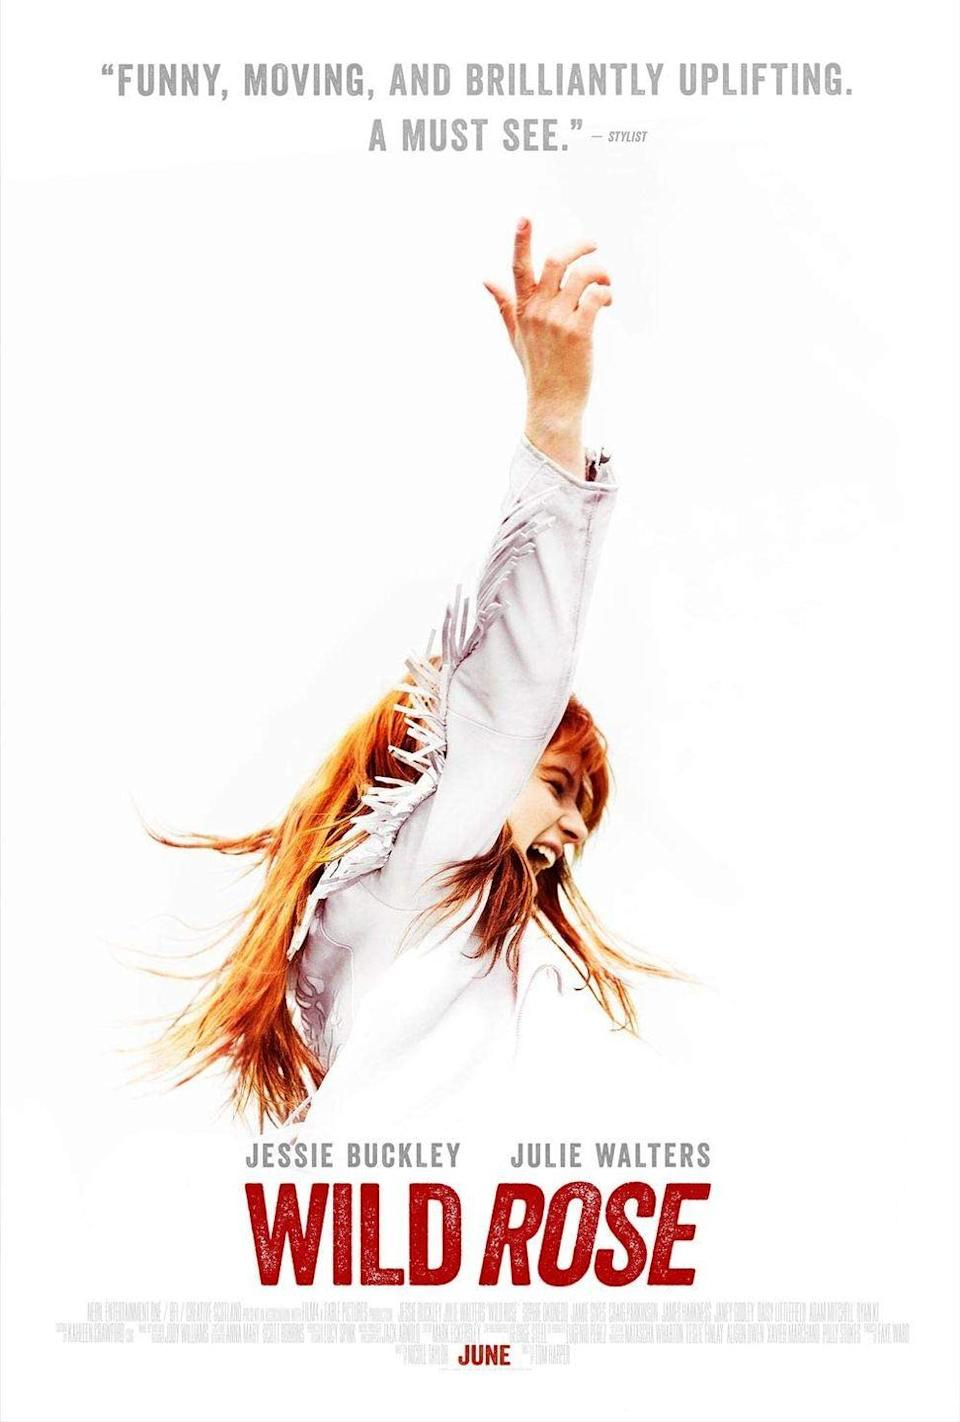 """<p>This under-the-radar British flick told the story of an aspiring Irish country singer trying to achieve her dreams after a stint in prison. It's a classic underdog story, but the music and Jessie Buckley's raw performance made it feel like something completely new. Blending both country classics by John Prine, Emmylou Harris, and Patty Griffin with original numbers like the poignant <a href=""""https://www.youtube.com/watch?v=E-l-Ly0ly4M"""" rel=""""nofollow noopener"""" target=""""_blank"""" data-ylk=""""slk:&quot;Glasgow (No Place Like Home),&quot;"""" class=""""link rapid-noclick-resp"""">""""Glasgow (No Place Like Home),""""</a> <em>Wild Rose </em>is one of the best movie musicals of the last decade.</p><p><a class=""""link rapid-noclick-resp"""" href=""""https://www.amazon.com/Wild-Rose-Jessie-Buckley/dp/B07SQF41QF?tag=syn-yahoo-20&ascsubtag=%5Bartid%7C10072.g.27734413%5Bsrc%7Cyahoo-us"""" rel=""""nofollow noopener"""" target=""""_blank"""" data-ylk=""""slk:WATCH NOW"""">WATCH NOW</a></p>"""